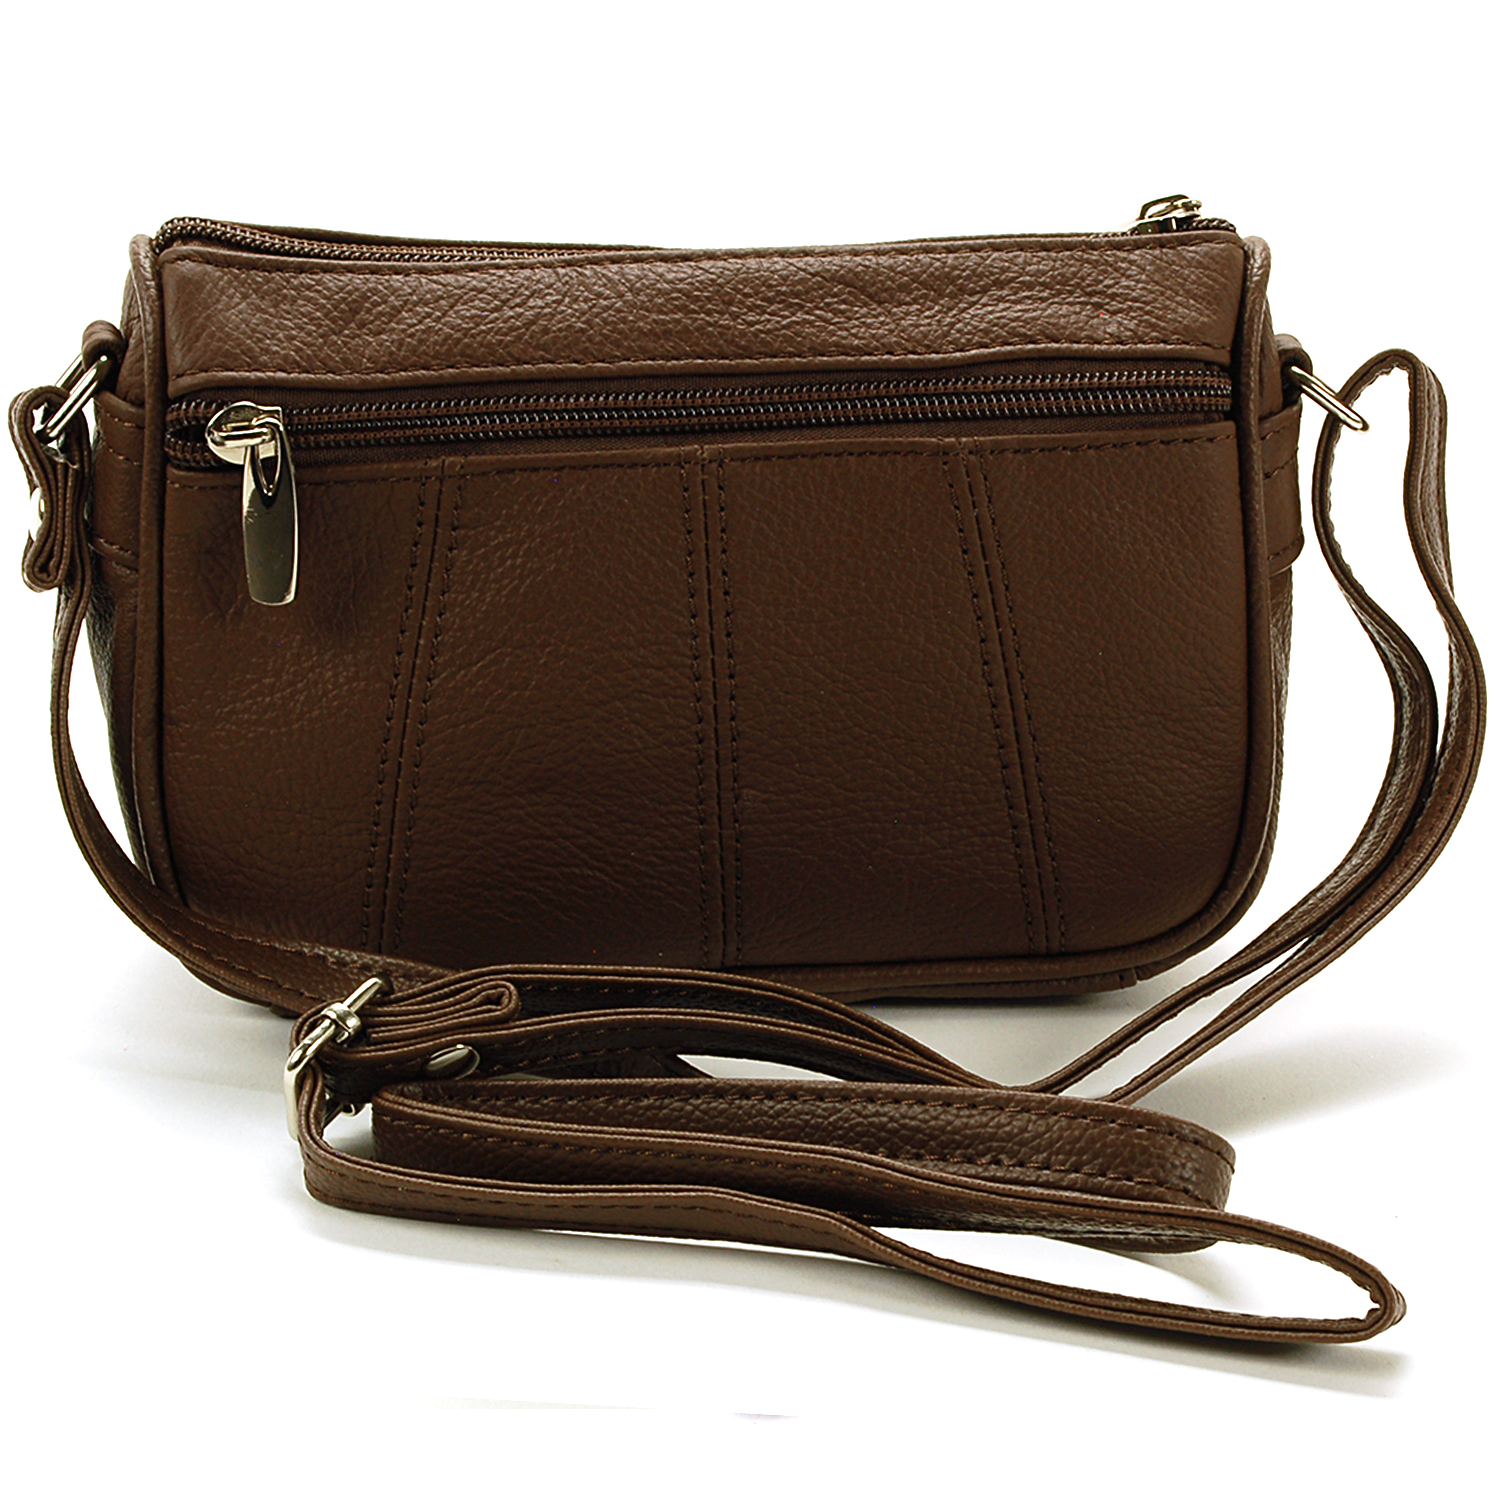 Women's Leather Purse Cross Body Bag Adjustable Strap Tote ...